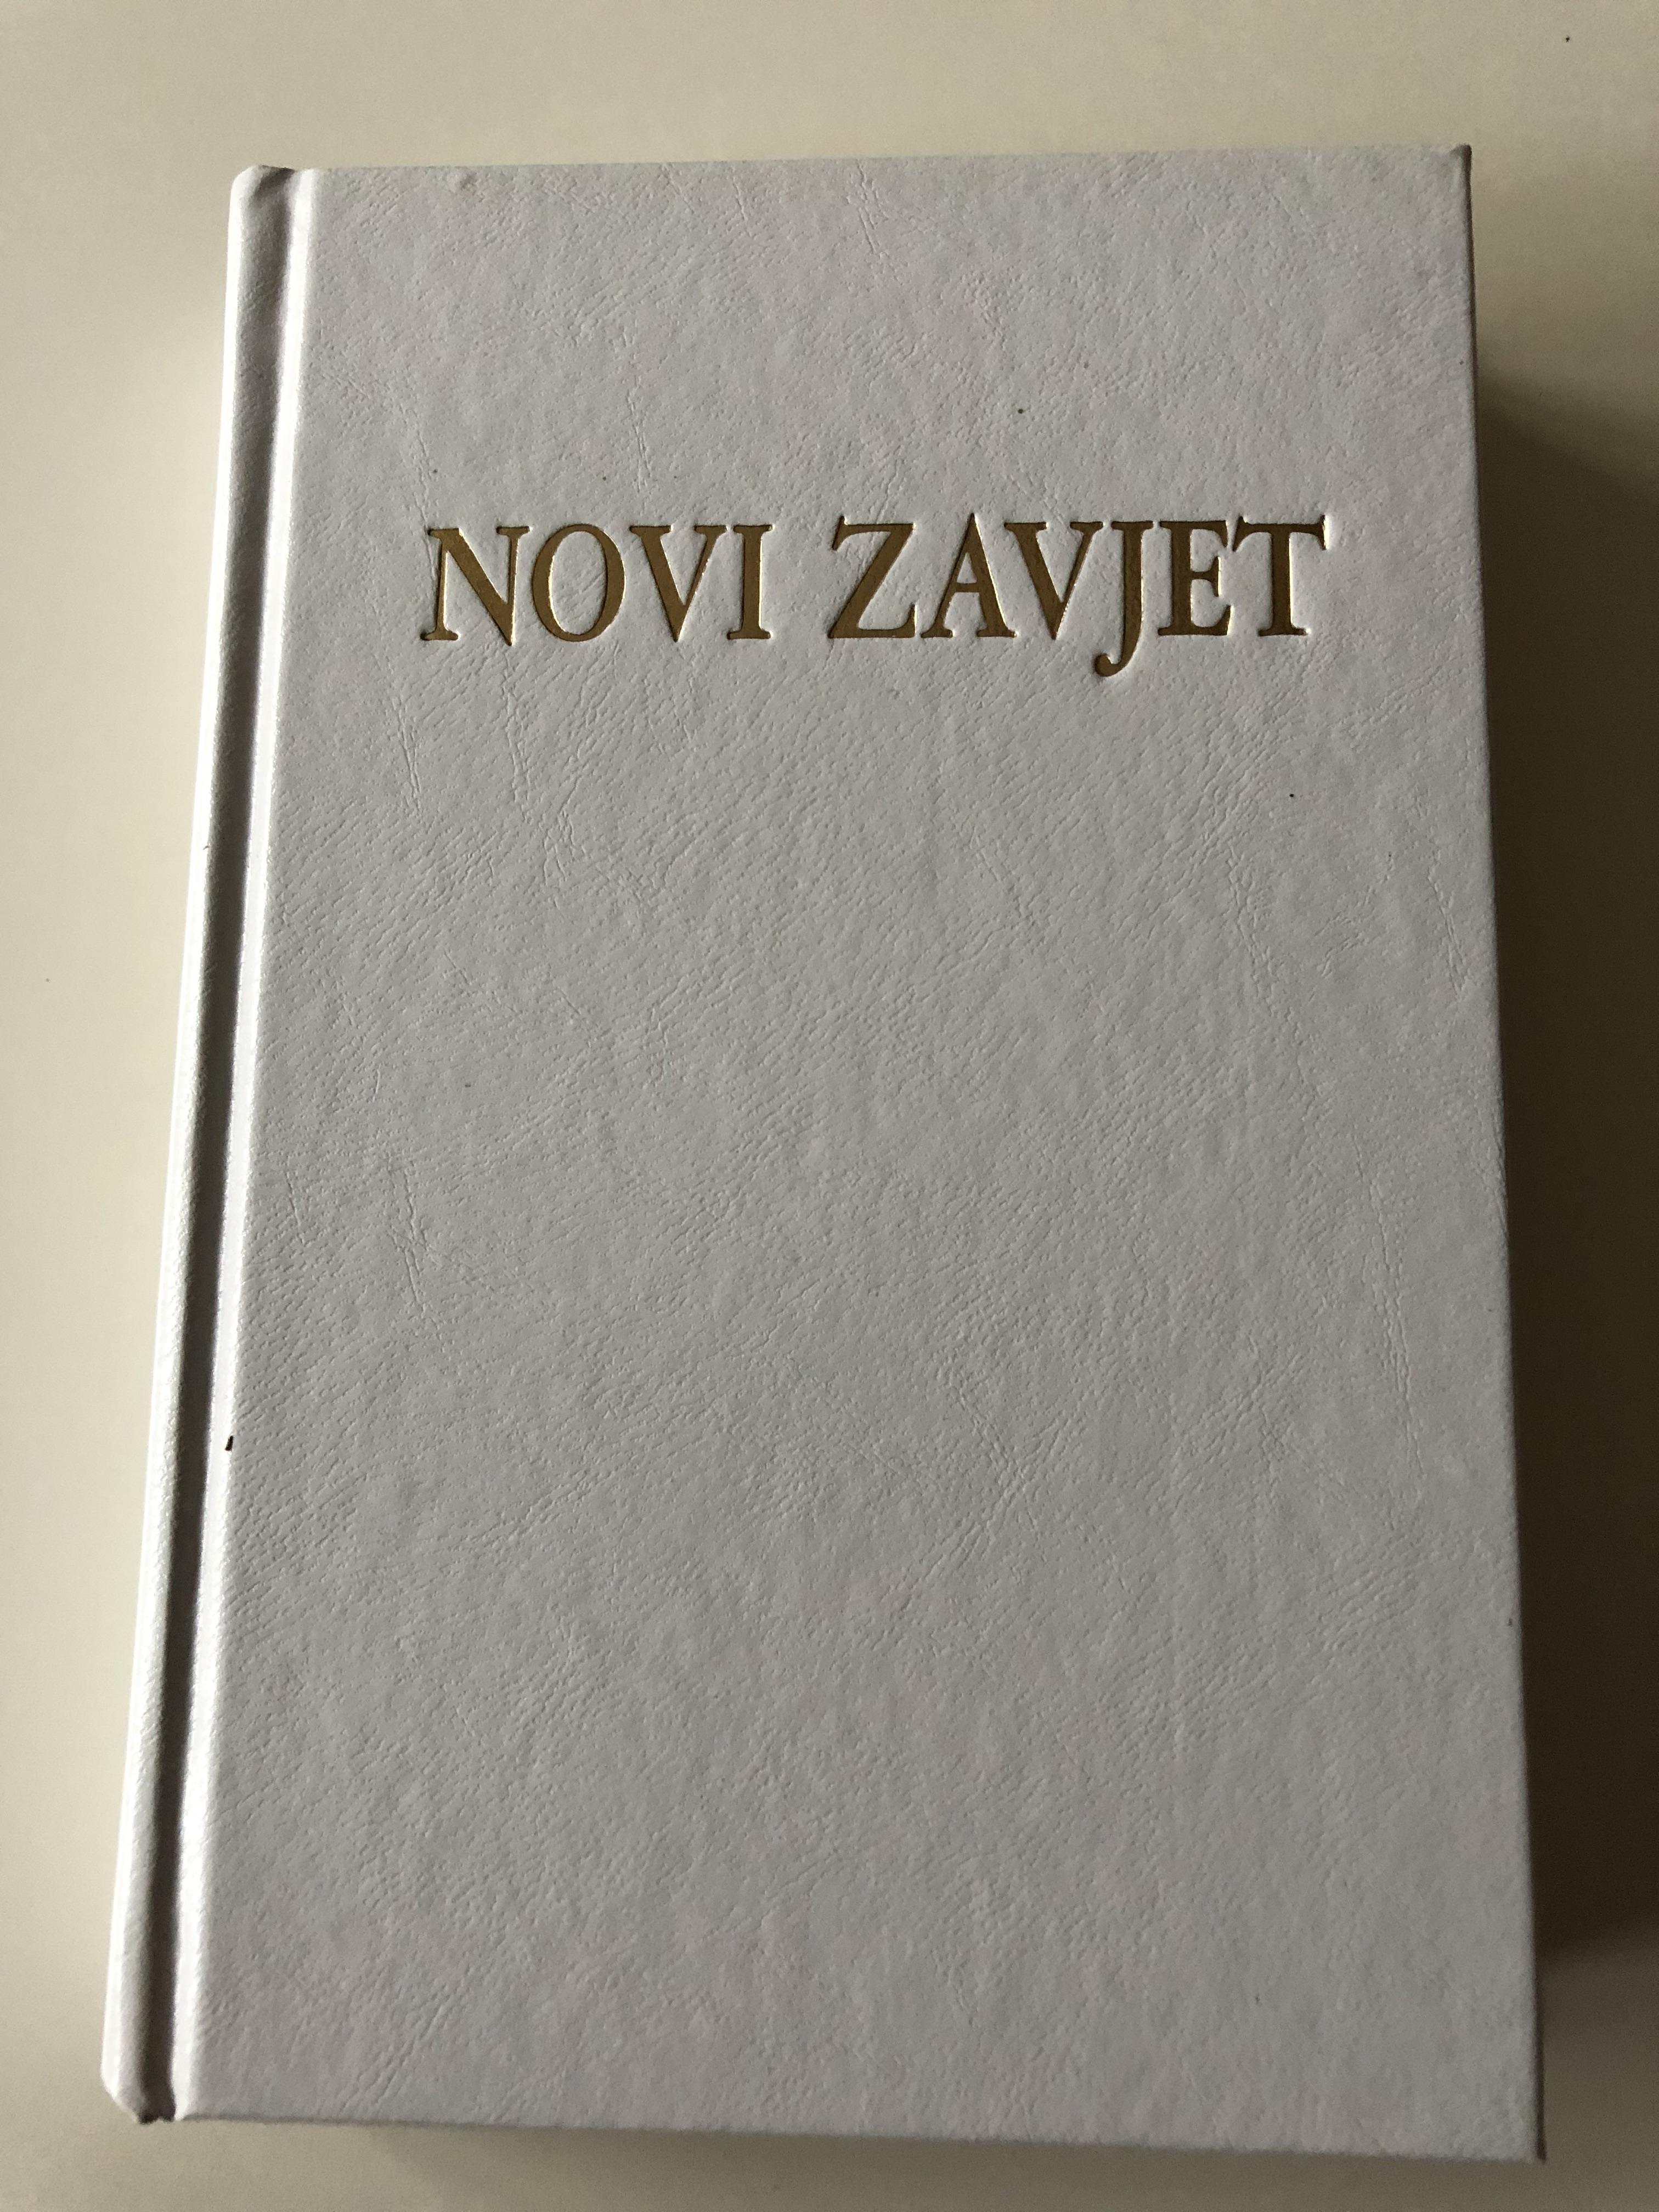 novi-zavjet-the-new-testament-in-croatian-language-hardcover-white-hbd-2013-1-.jpg